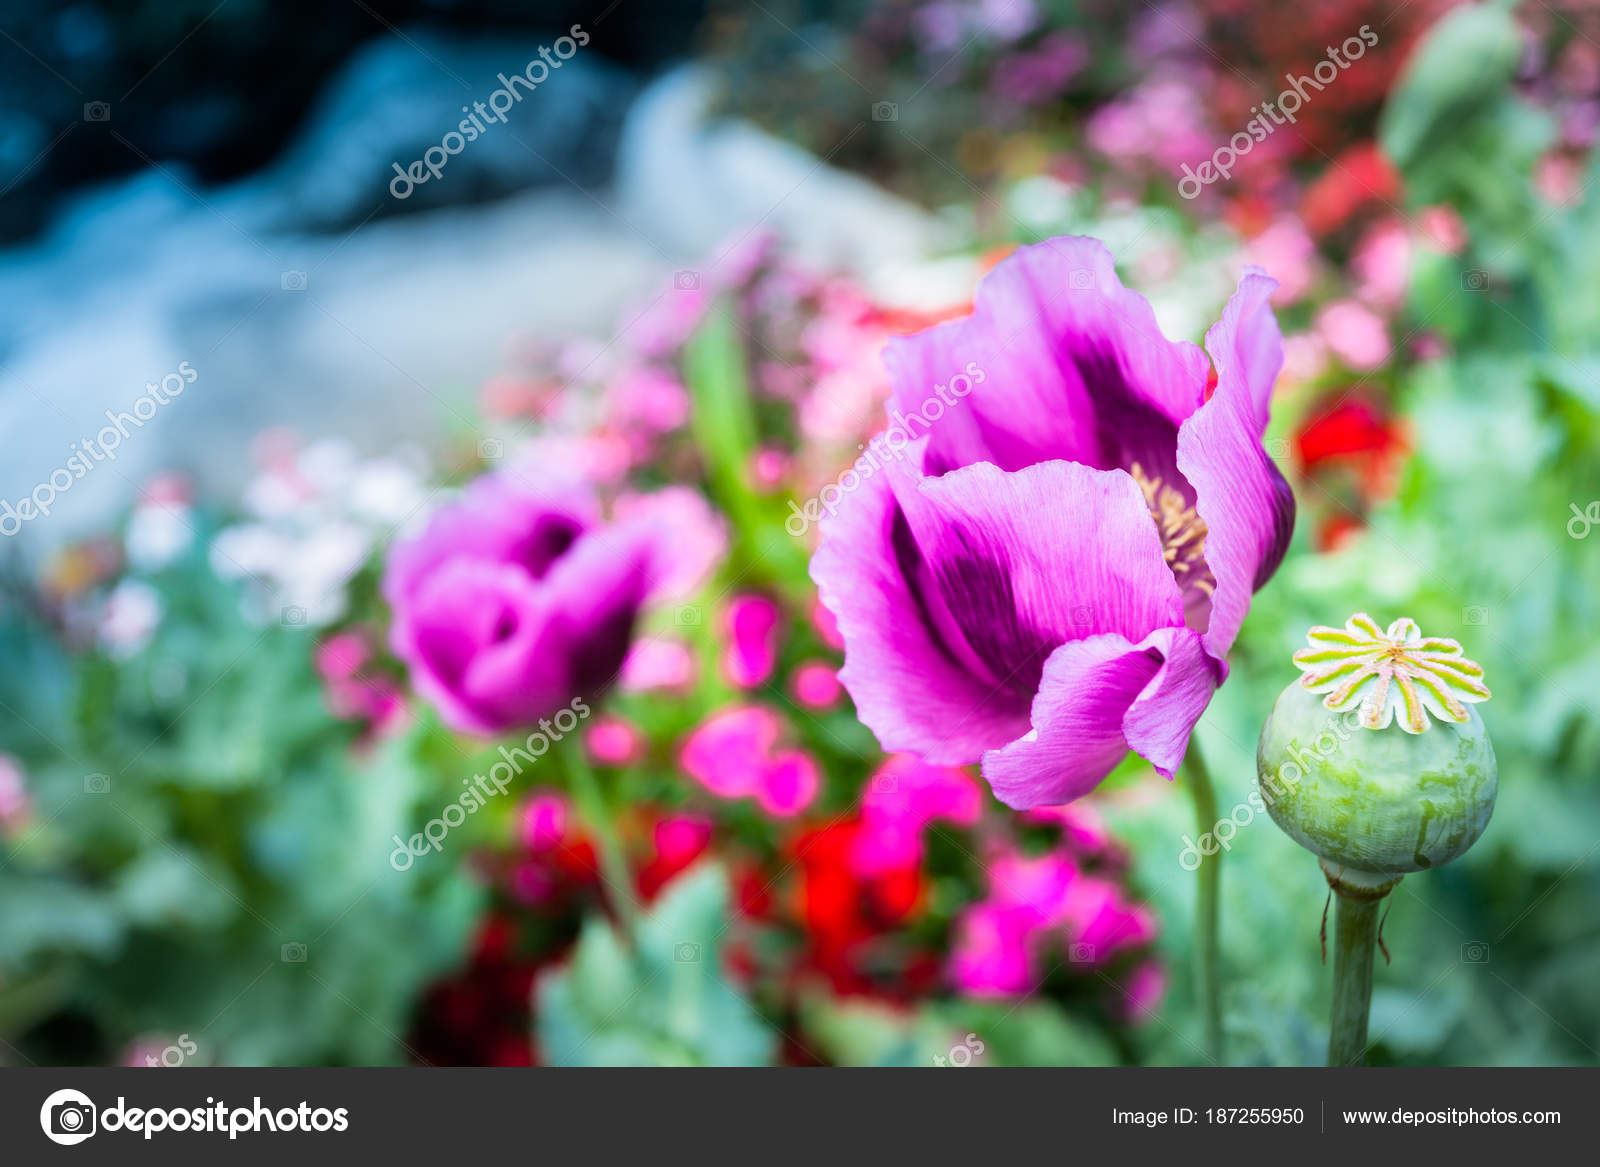 Opium Can Be Extracted As Heroin Stock Photo Thaisign 187255950